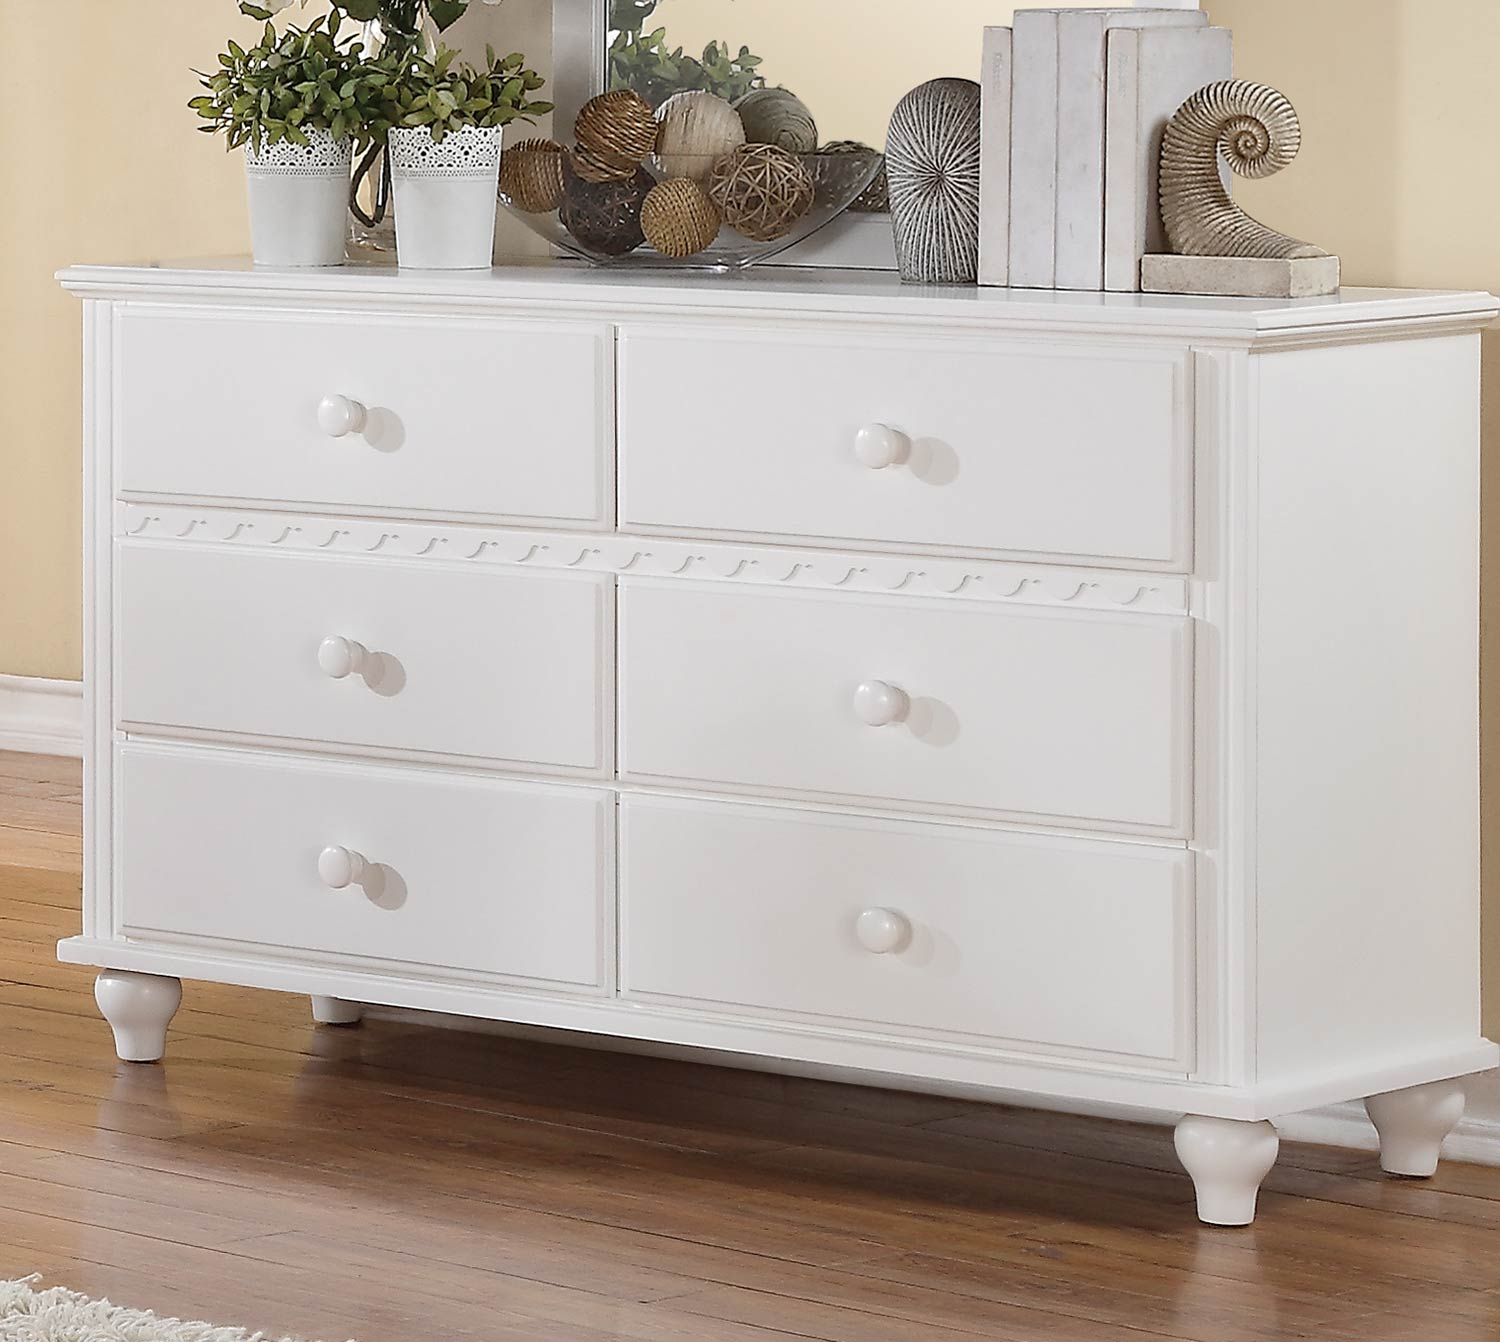 Homelegance Emmaline Bedroom Set White 2019 BEDROOM SET At